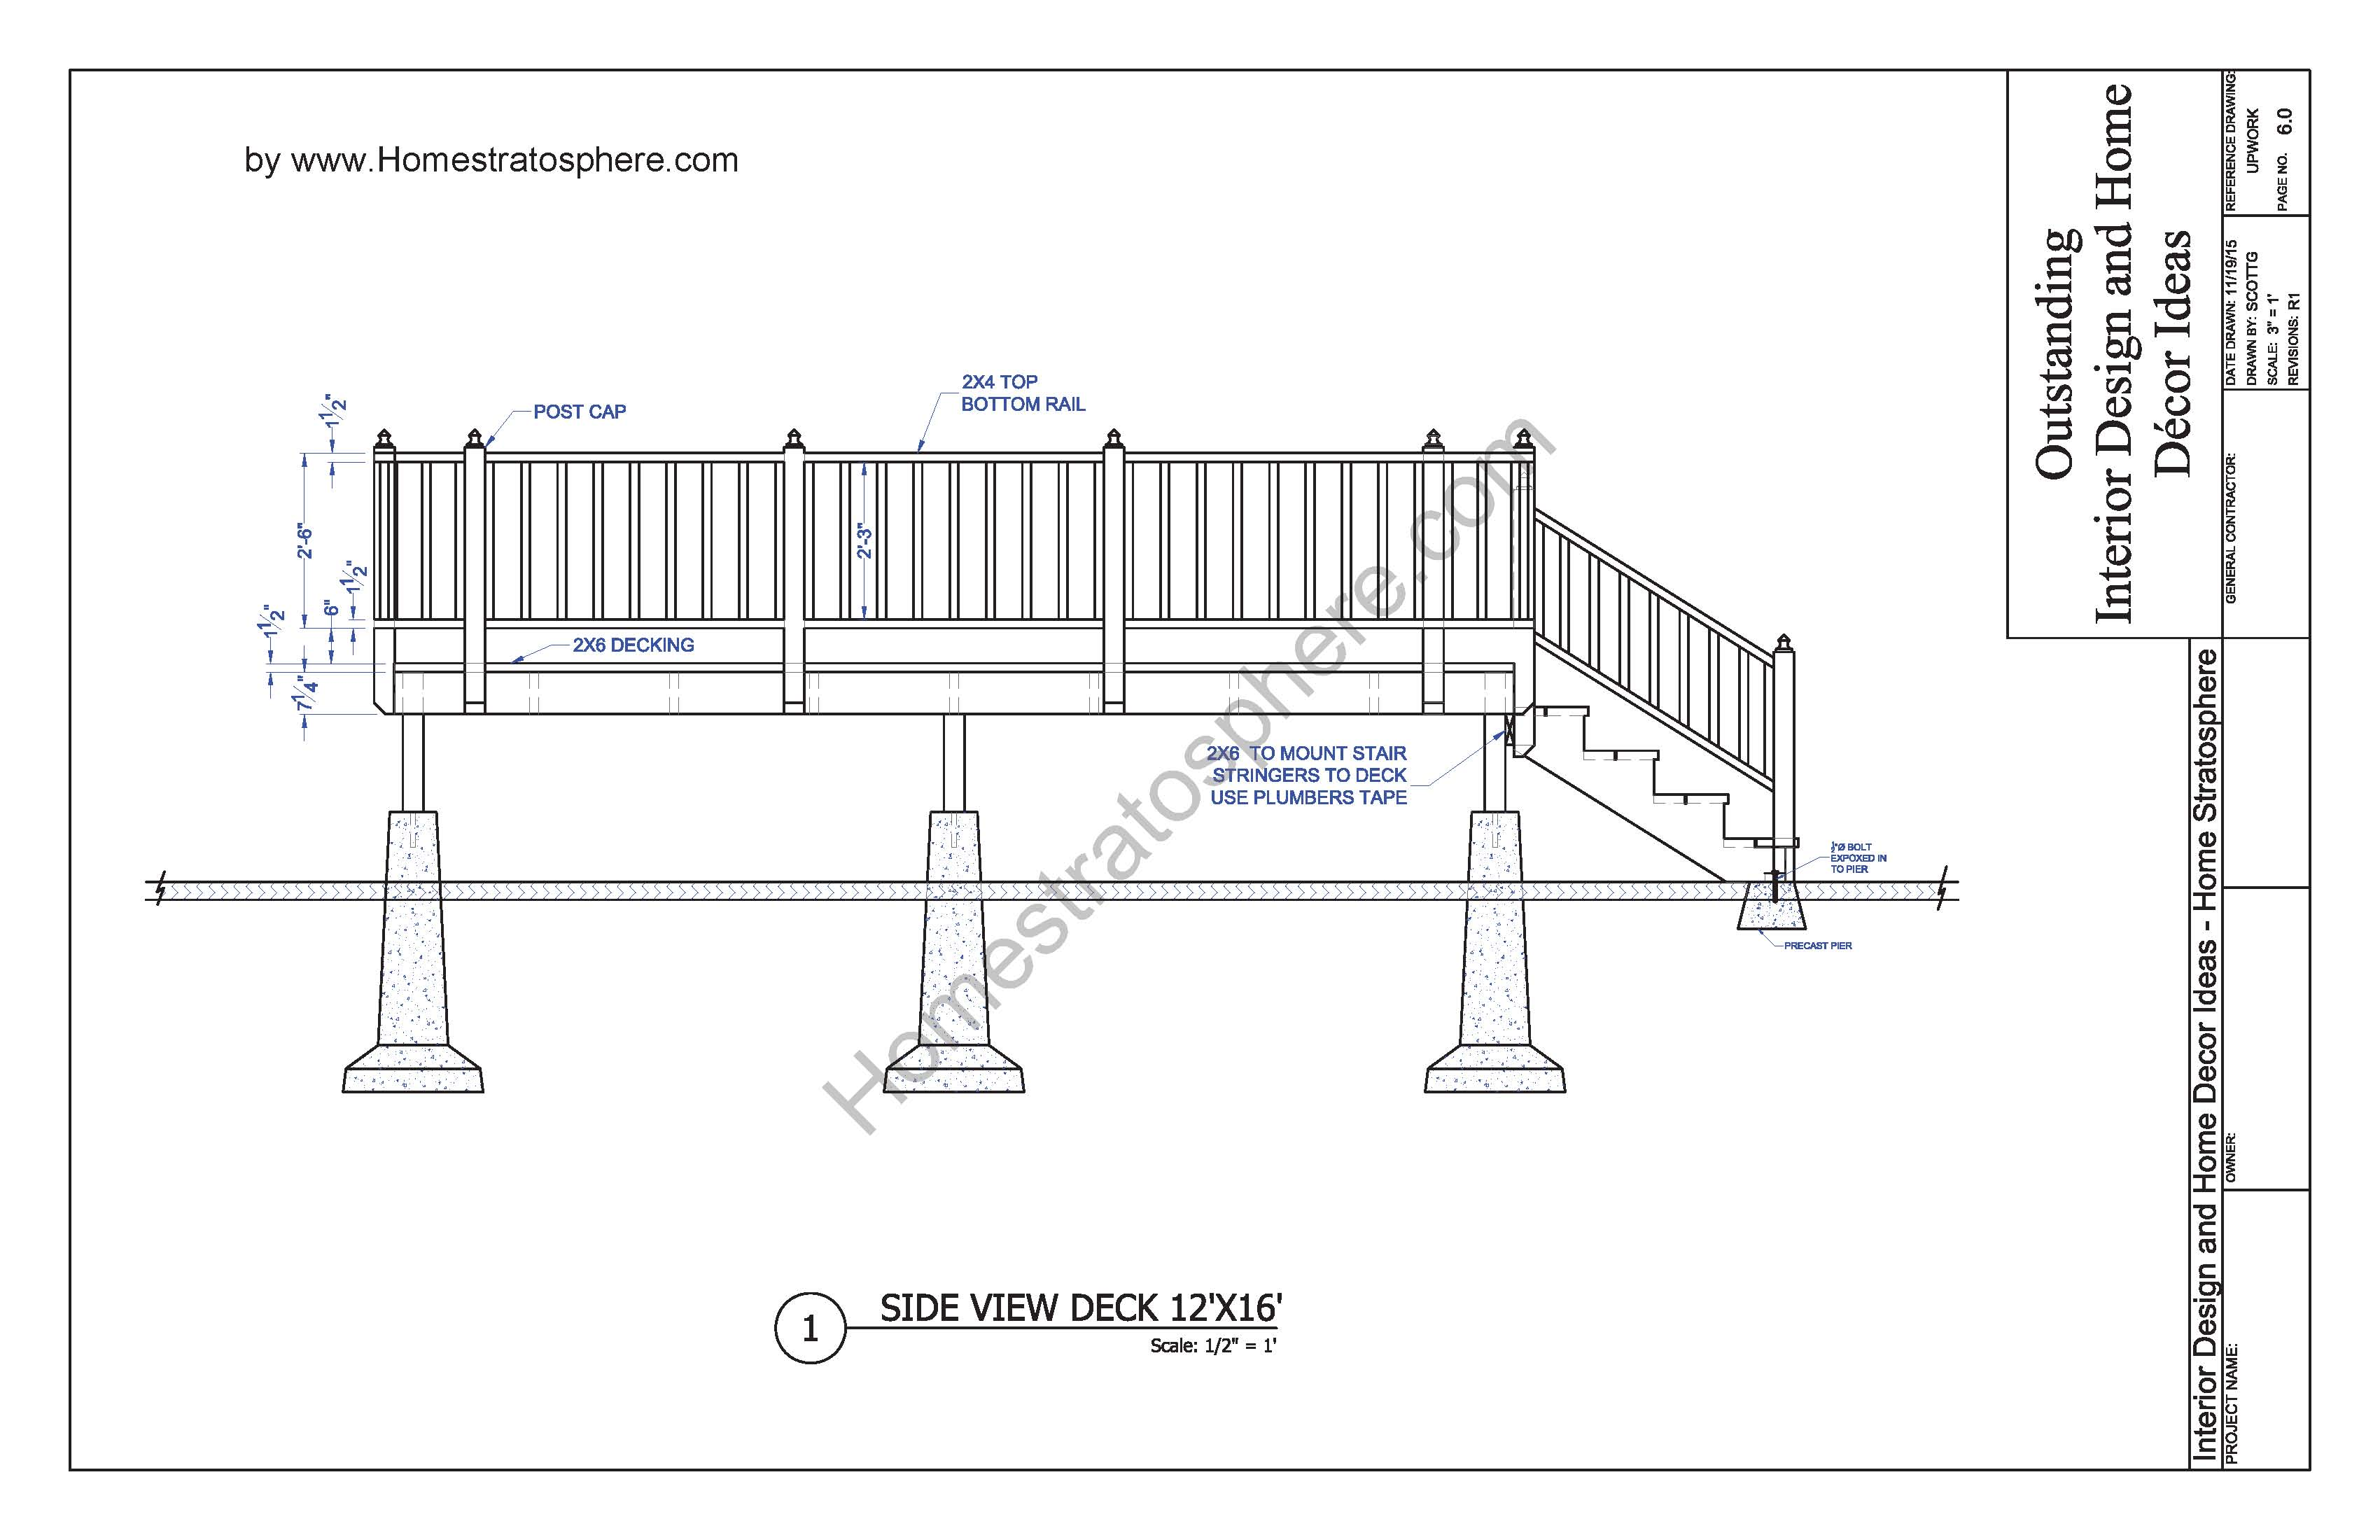 Timber frame construction drawings besides Grabcorp16 wordpress likewise 14x16 Timber Frame also Stair Landing Construction together with Enclosed Trailer Large. on deck framing plans